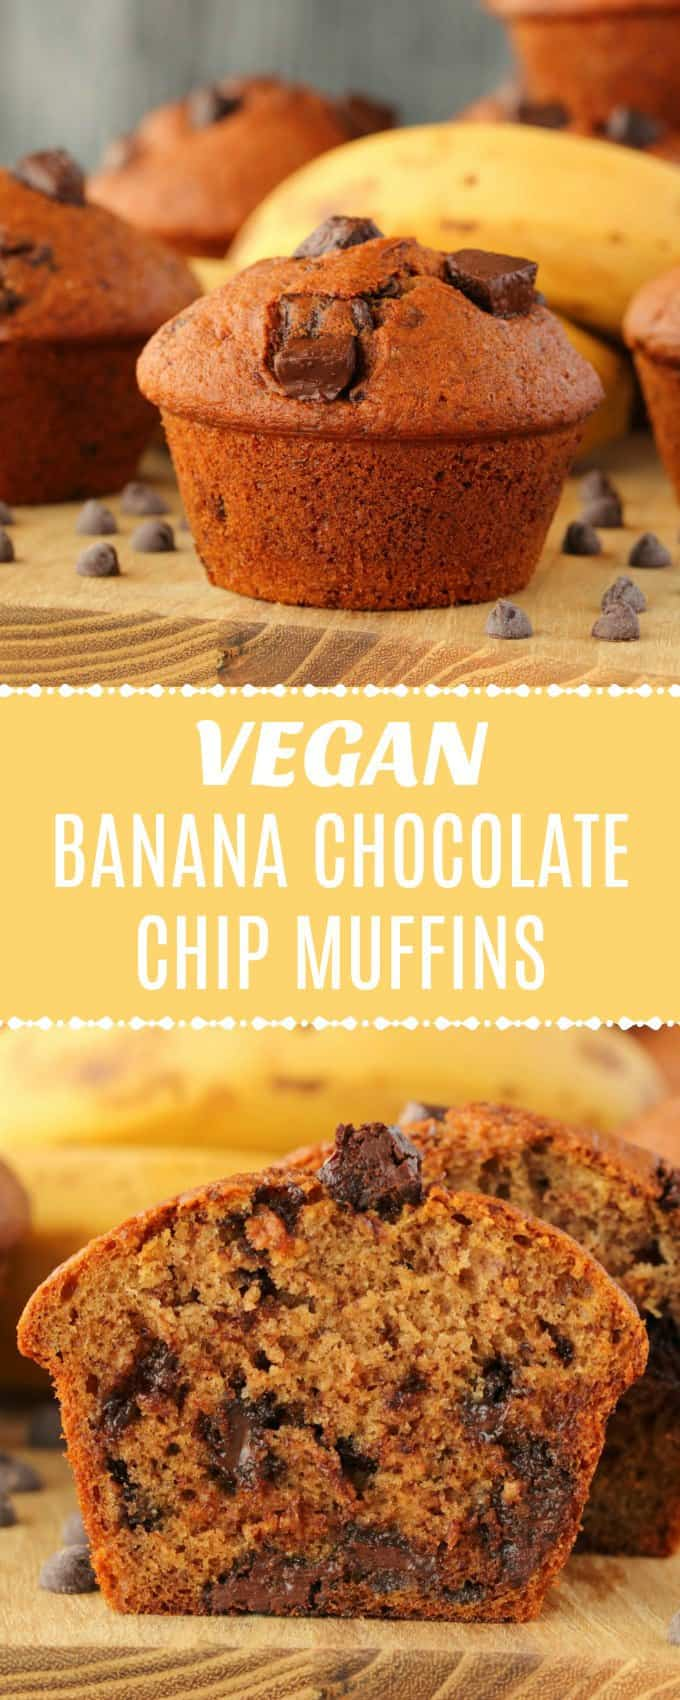 Rich and flavorful vegan banana chocolate chip muffins. These moist and delicious vegan muffins are packed with chocolate chunks and wonderfully satisfying! | lovingitvegan.com